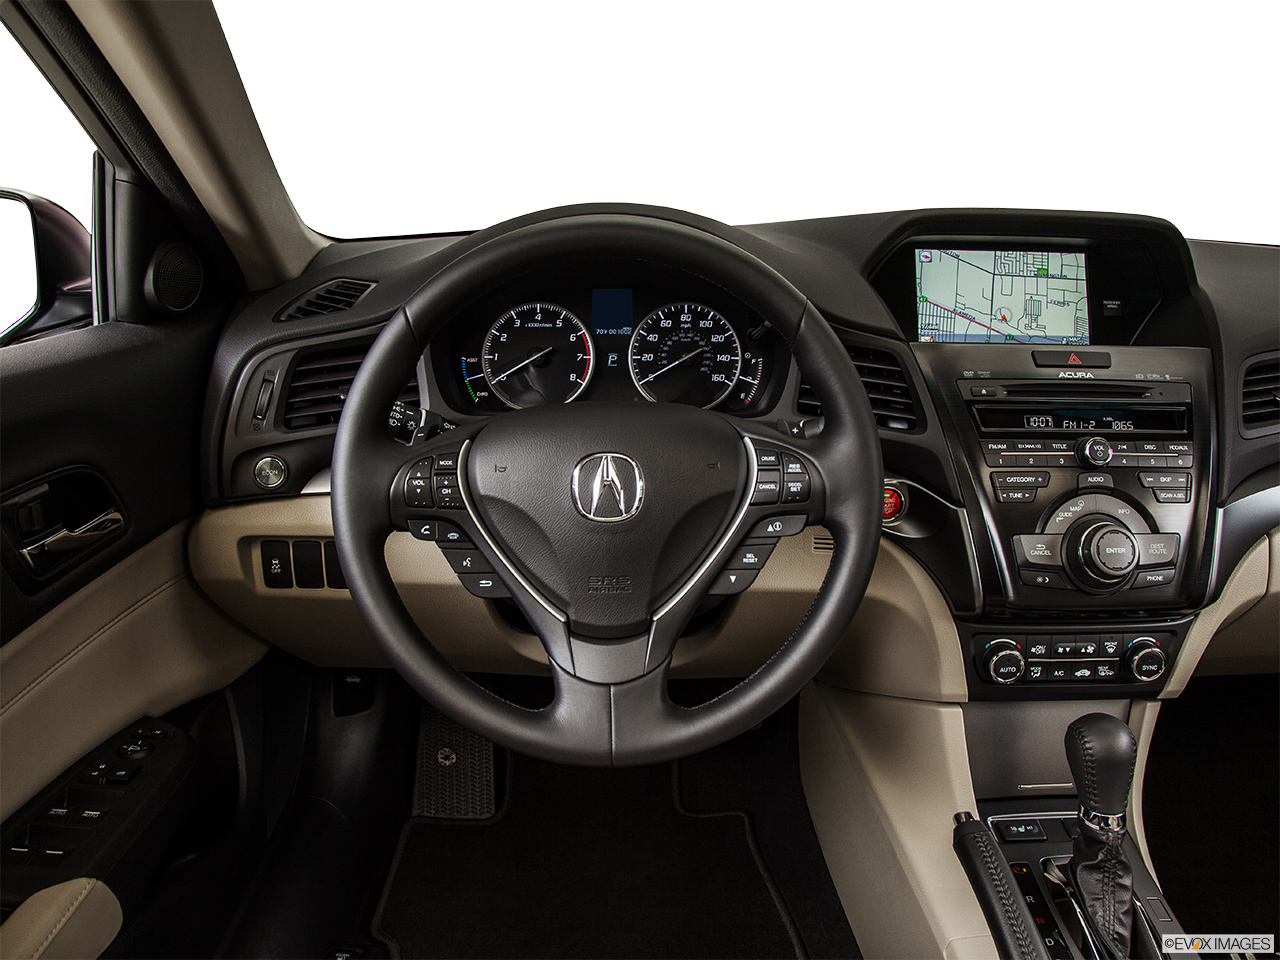 2014 Acura ILX Hybrid Base Steering wheel/Center Console.